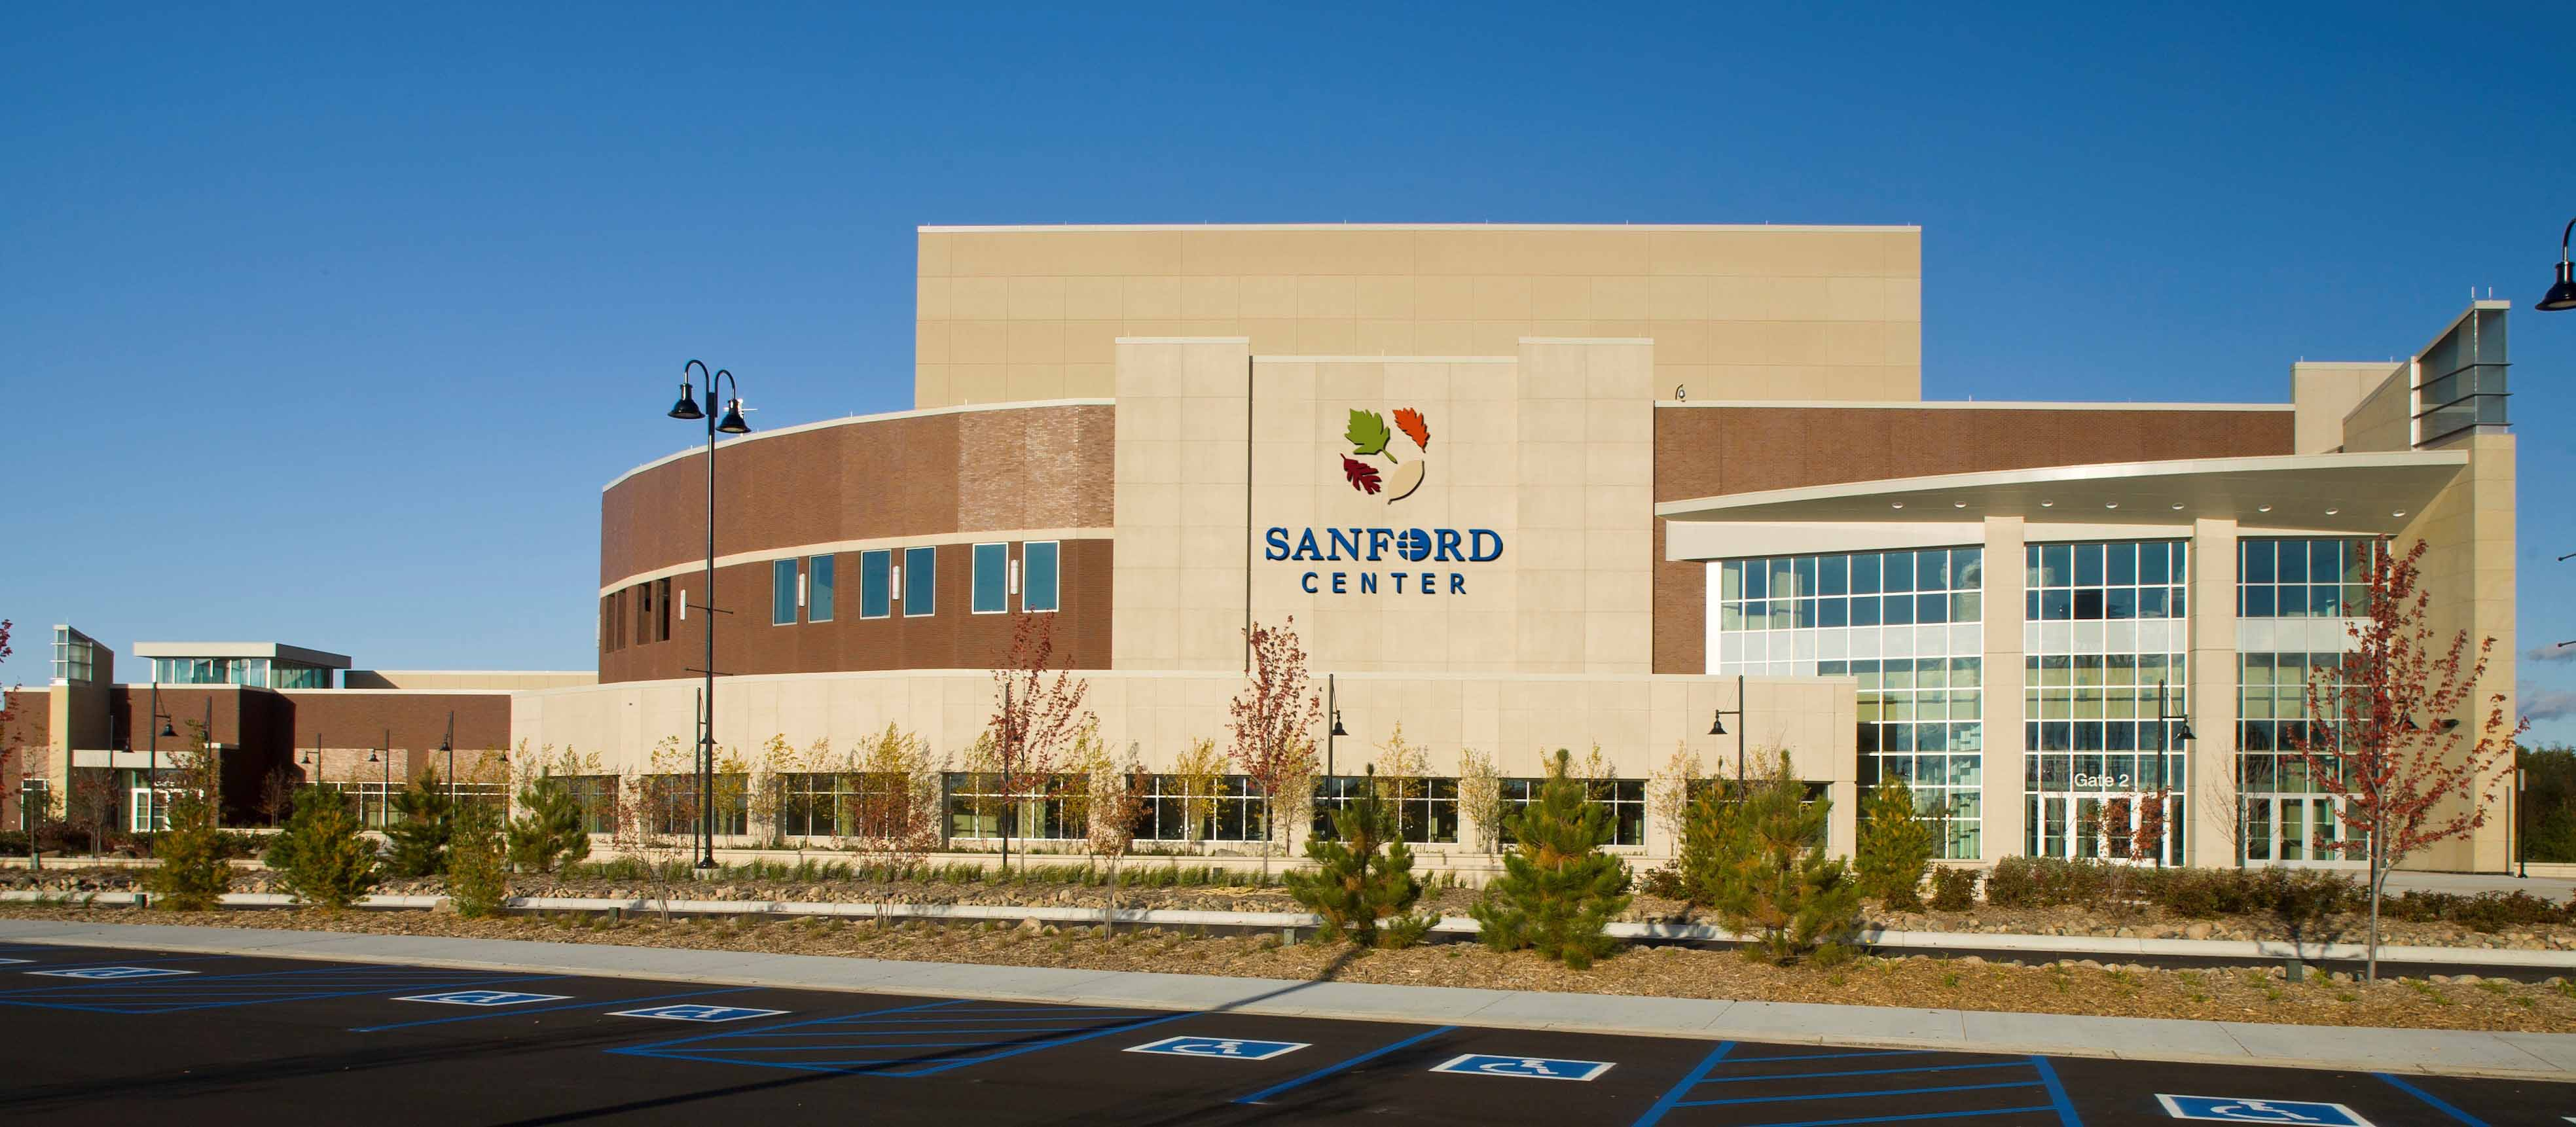 Sanford Center for events and conventions